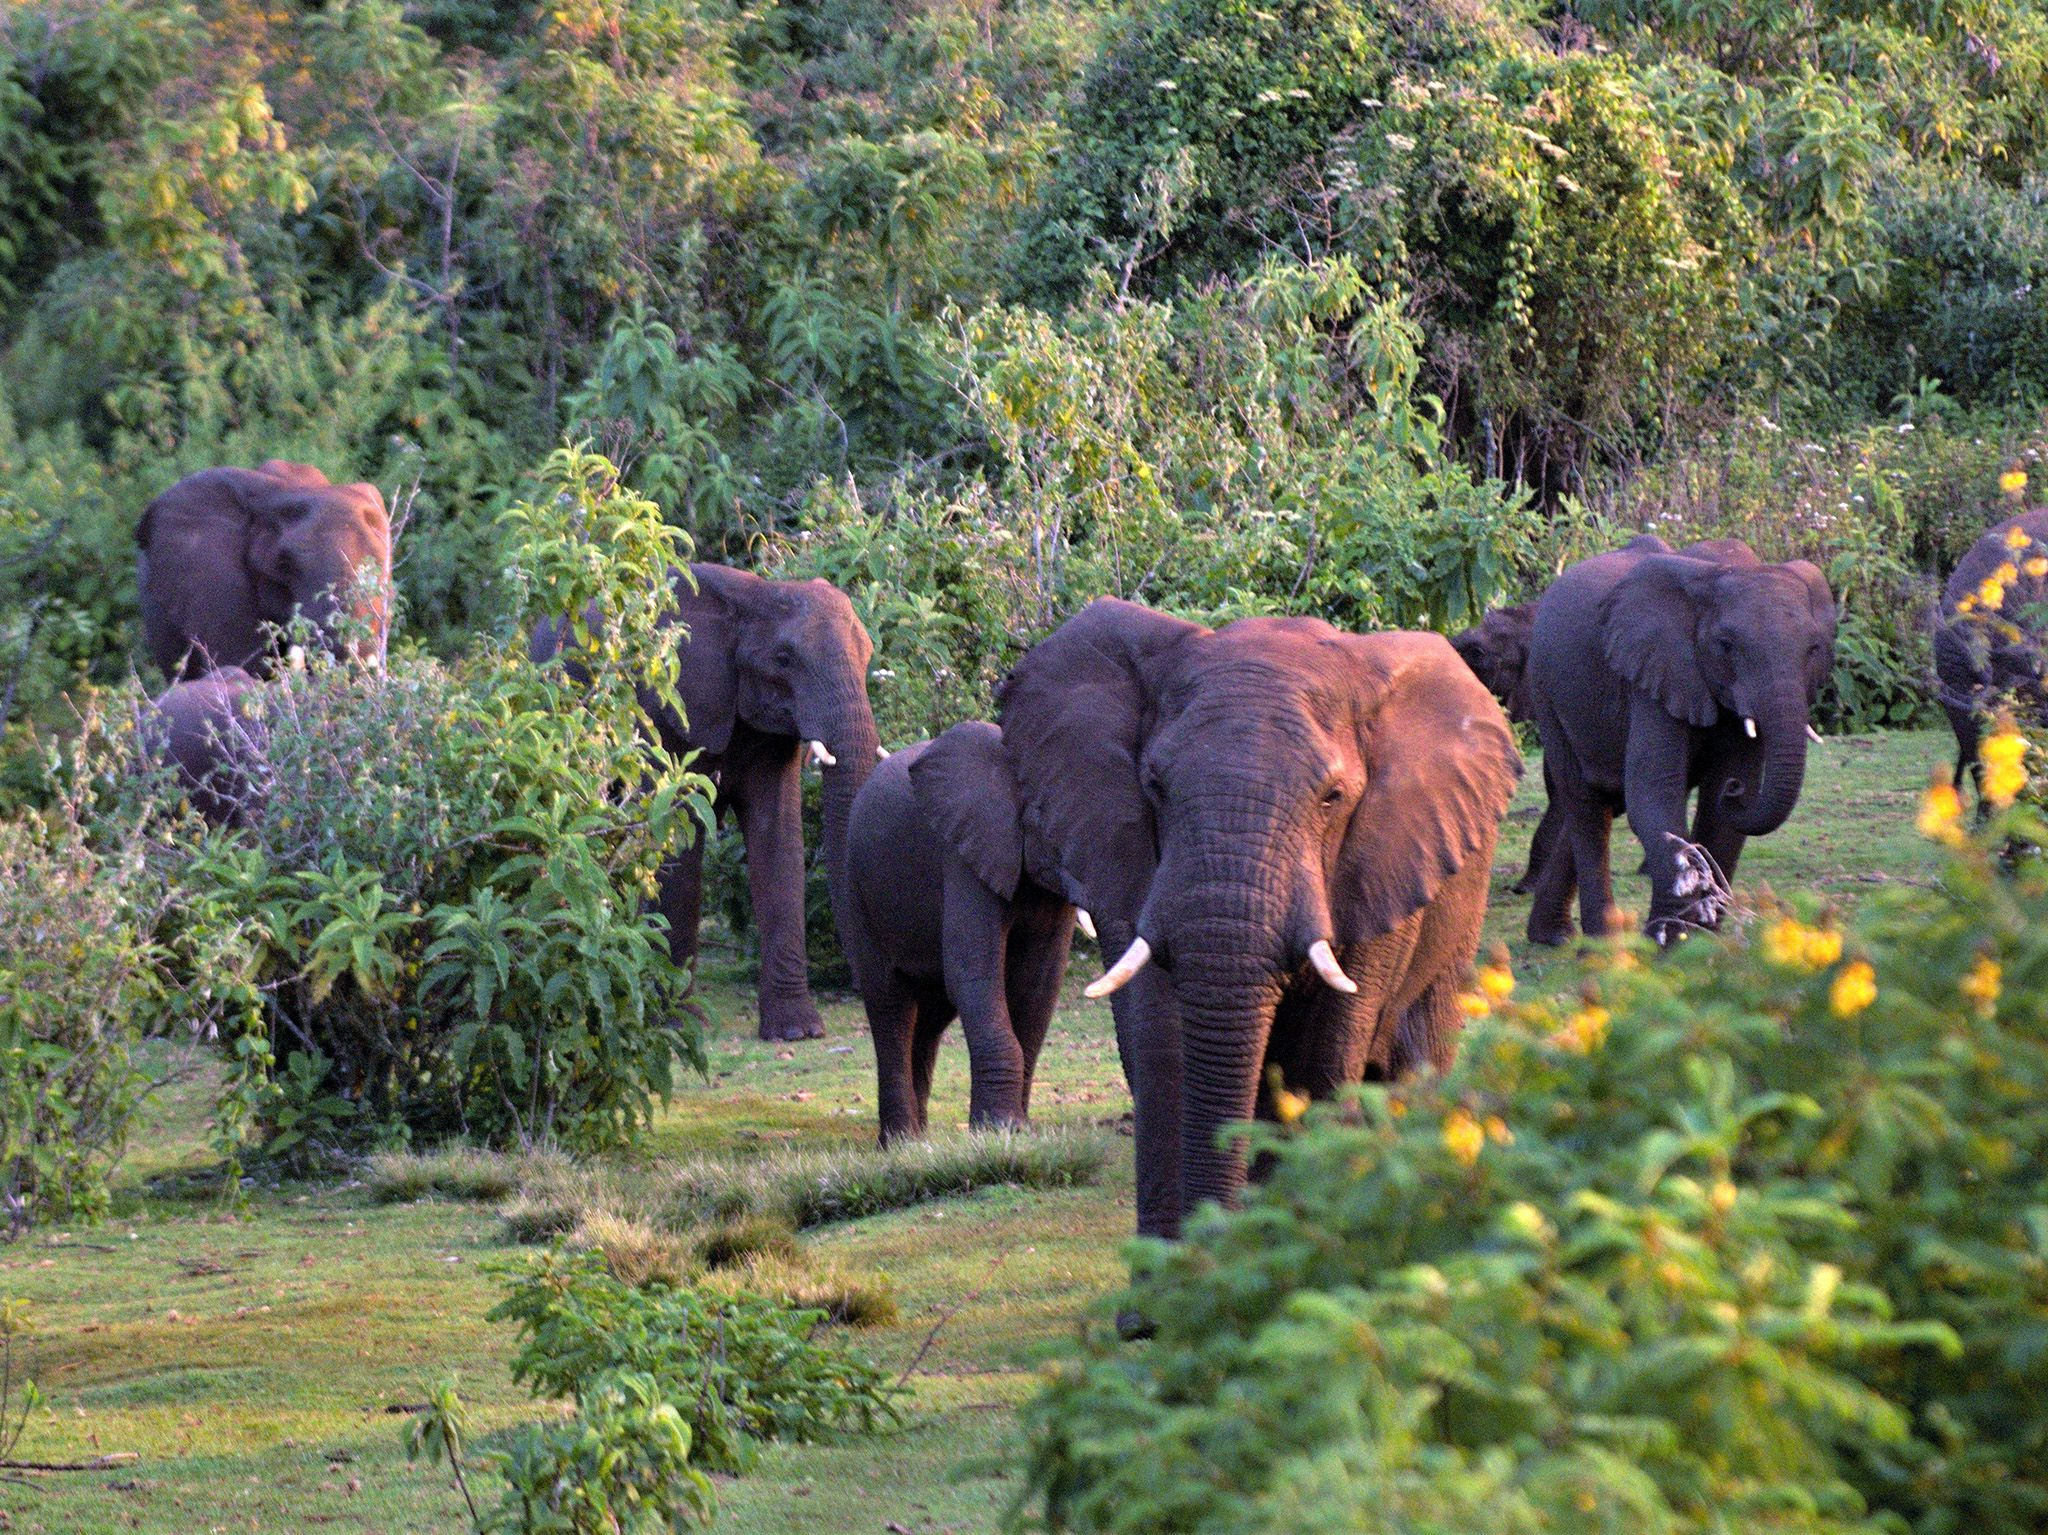 Uganda:  A herd of elephants on their way to the elephant caves. This image is from Wild Uganda. [Photo of the day - September 2018]